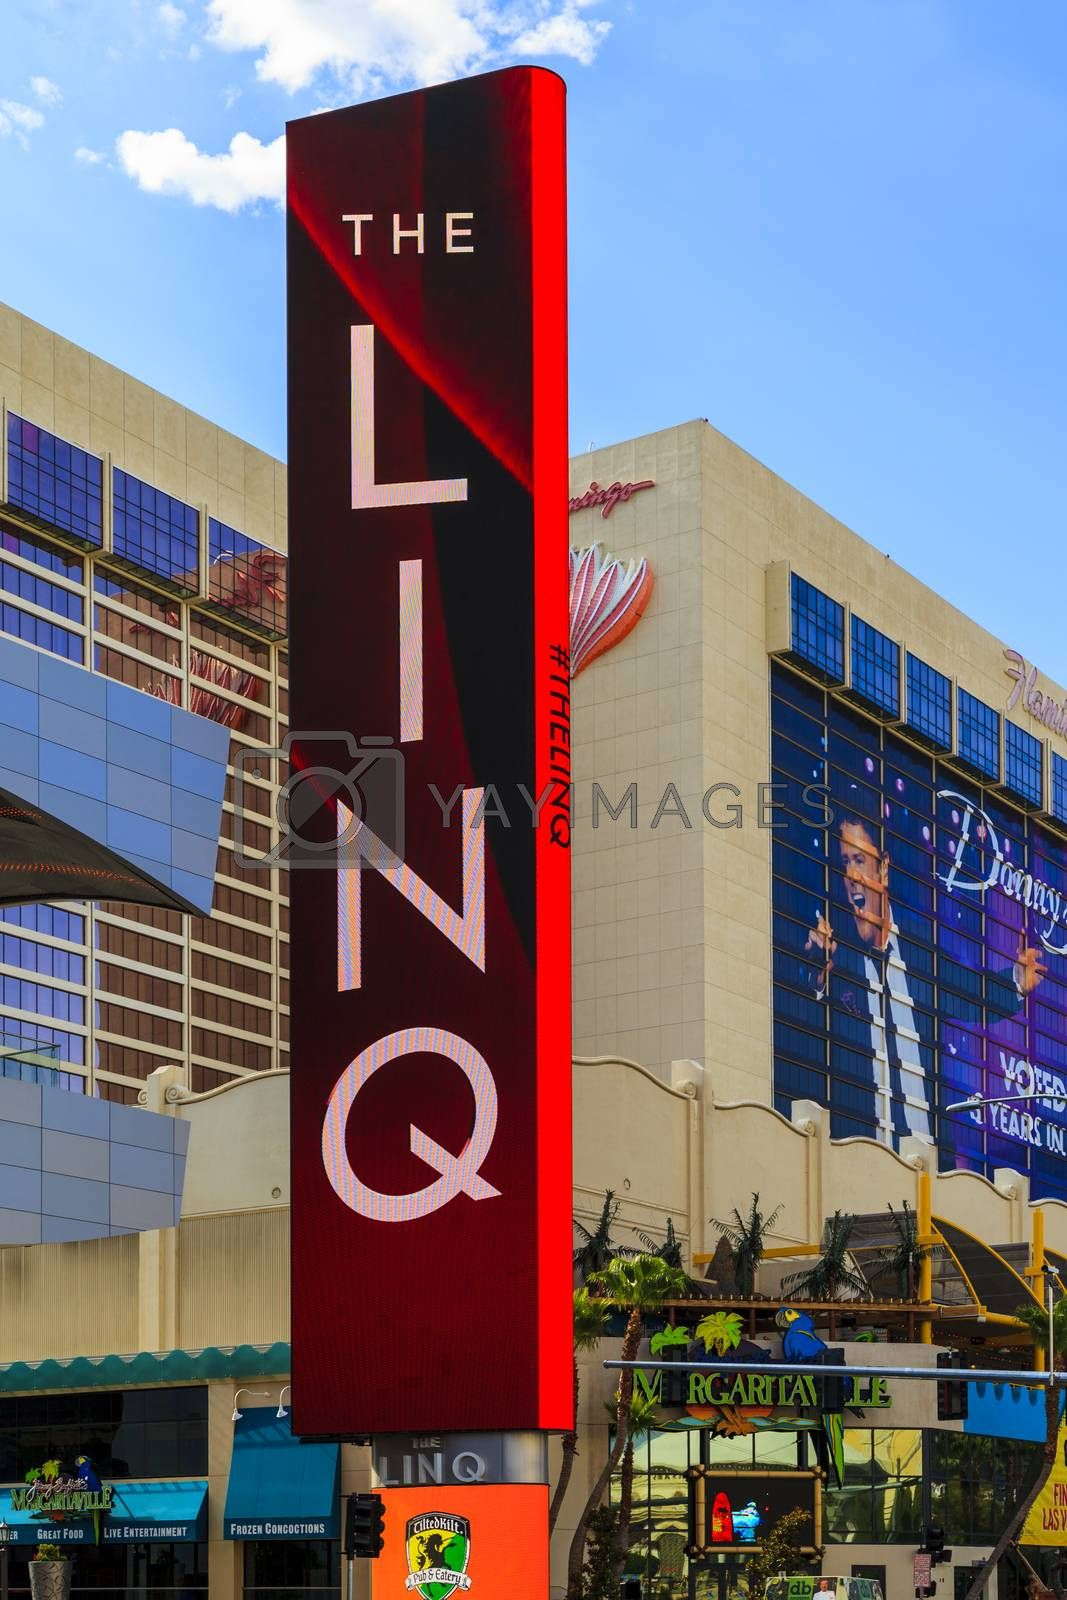 LAS VEGAS - JULY 7, 2015 -The LINQ Sign in Las Vegas. The LINQ is the open-air shopping and dining area leading up to The High Roller Wheel the world's largest observation wheel.